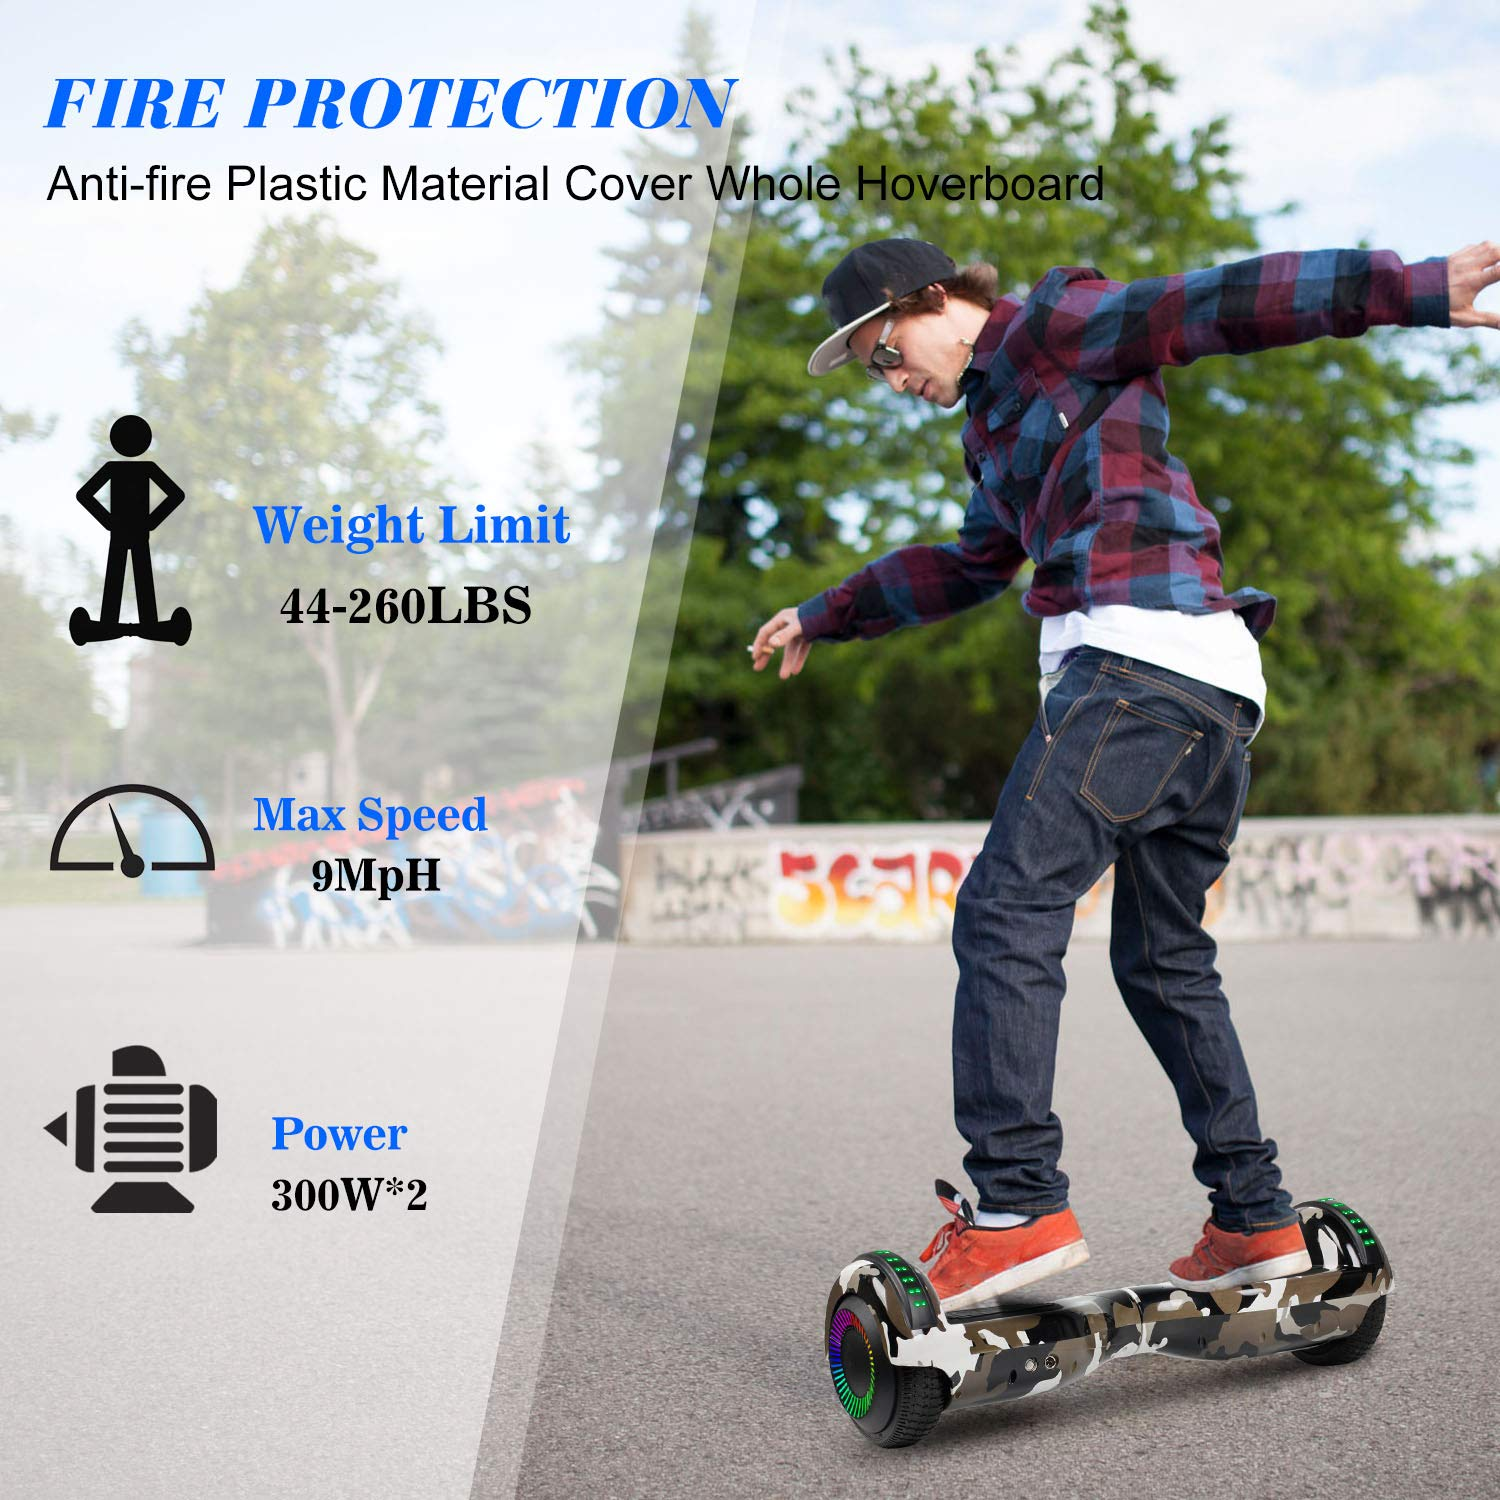 Hoverboard Self Balancing Scooter 6.5'' Two-Wheel Self Balancing Hoverboard with Bluetooth Speaker and LED Lights Electric Scooter for Adult Kids Gift UL 2272 Certified Fun Edition - Desert Camo by SISIGAD (Image #5)